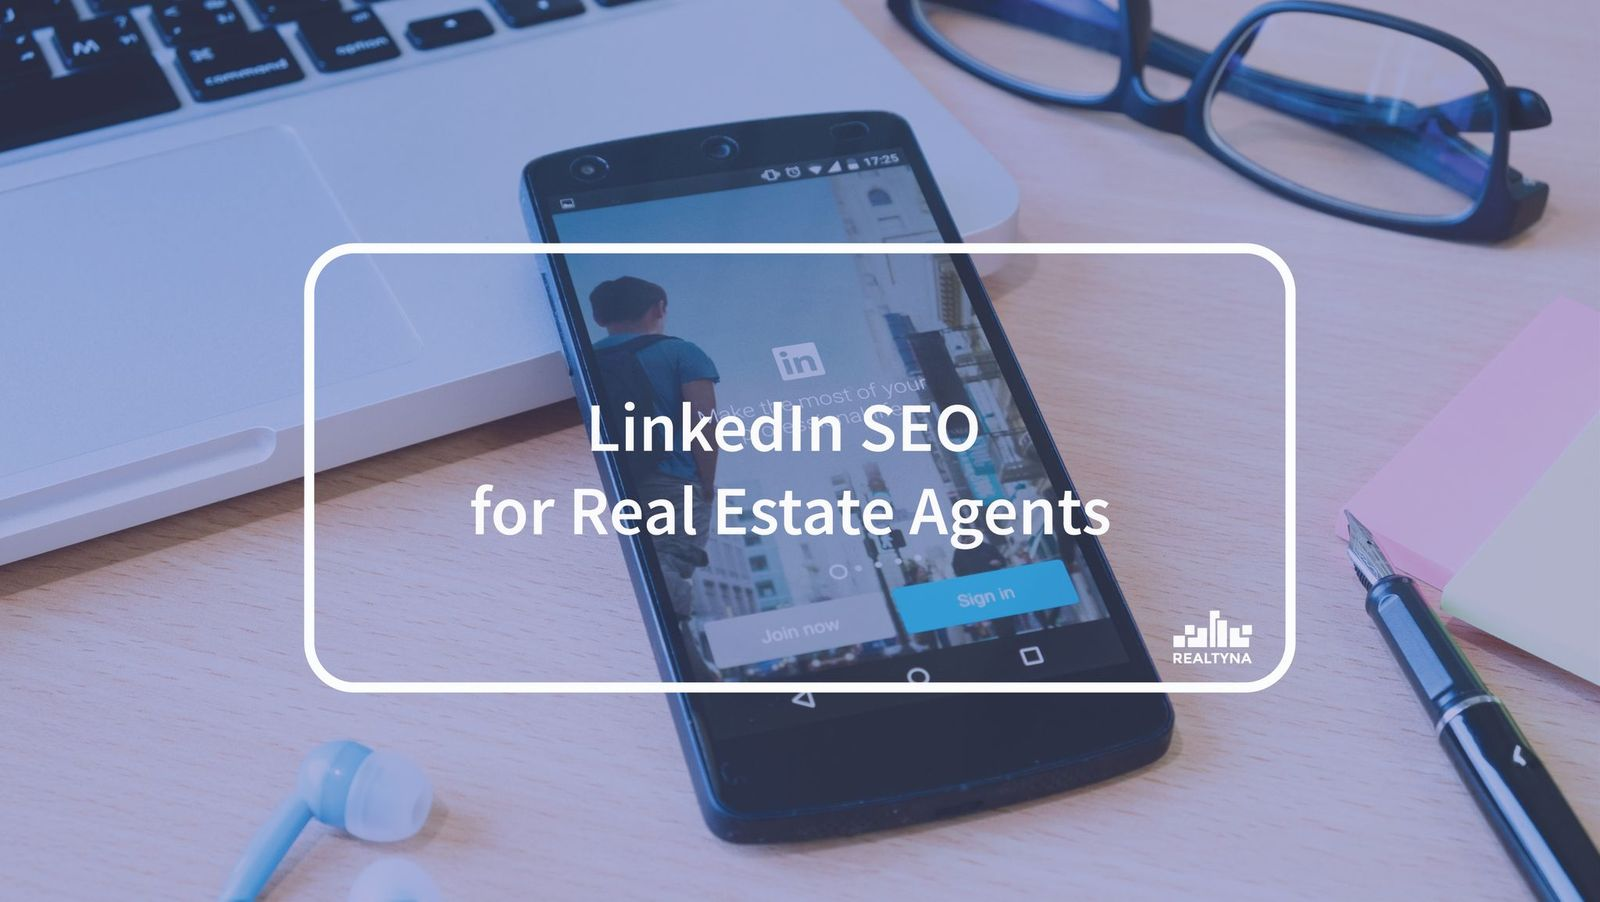 LinkedIn SEO for Real Estate Agents